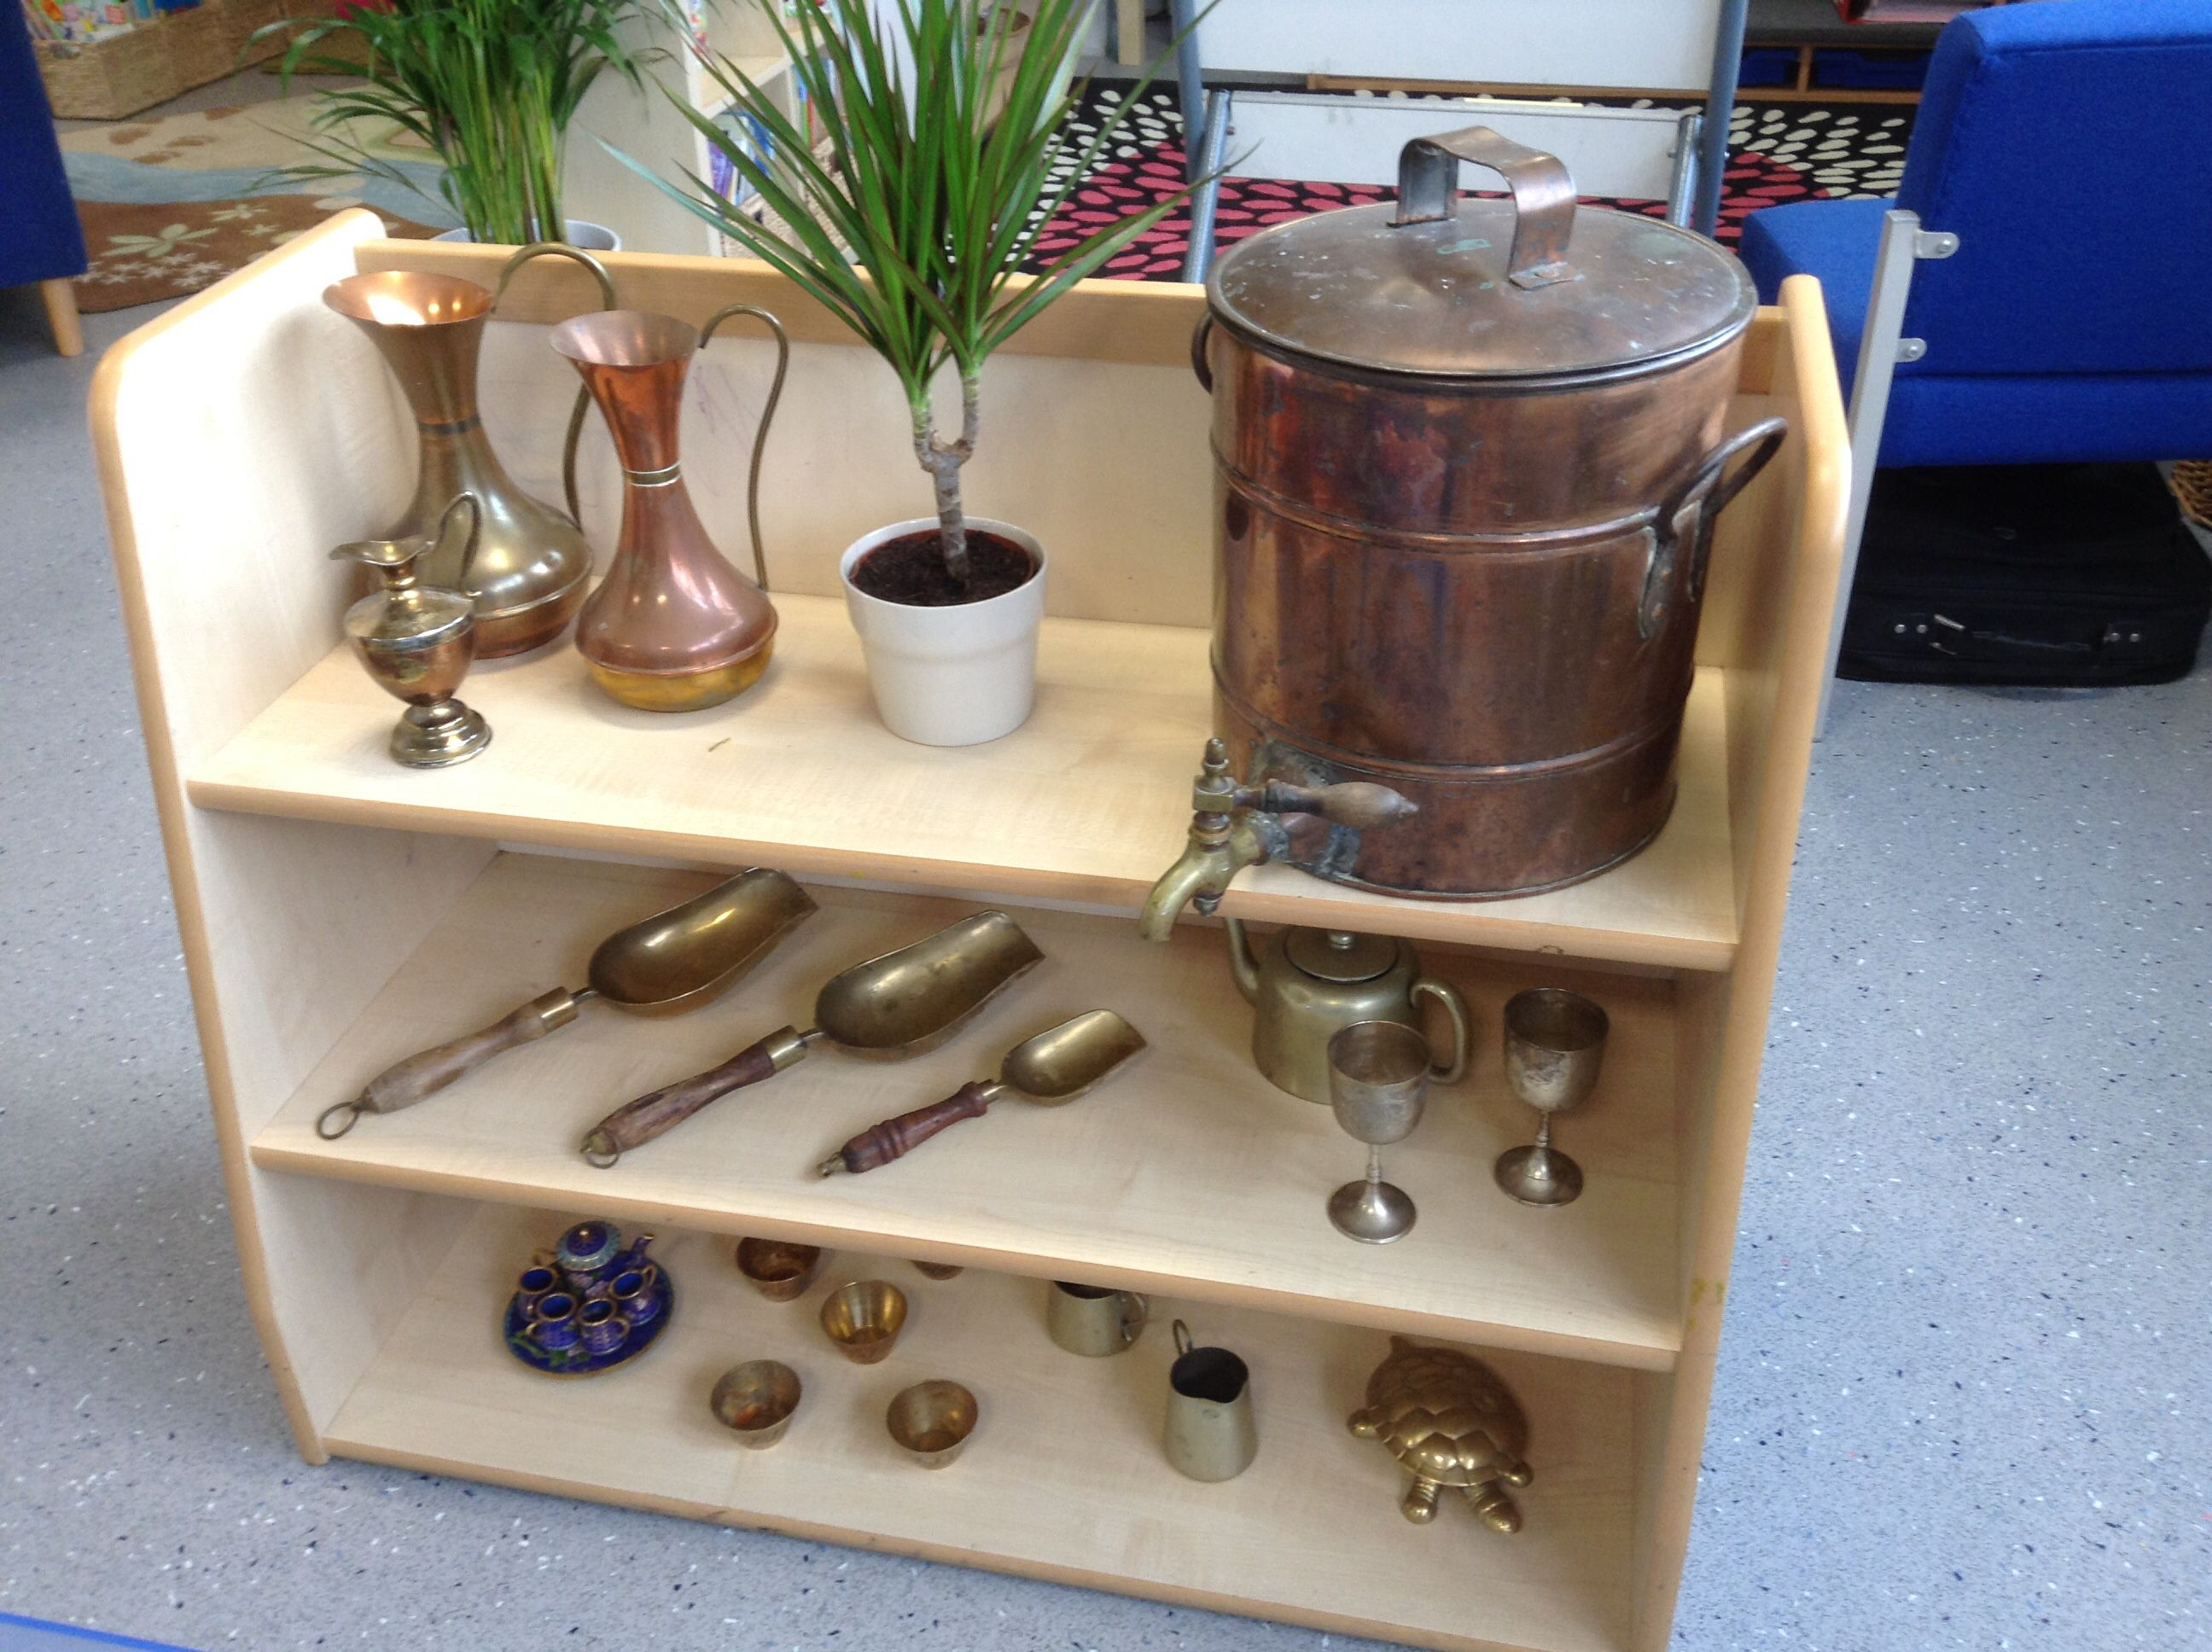 Water play shelf.  We have changed all of our water resources to brass to create a greater sensory experience of  the children. The weight, texture, shiny reflective surfaces etc all create more talking and exploring points than the plastic resources, and are a lot more exciting for them to use!